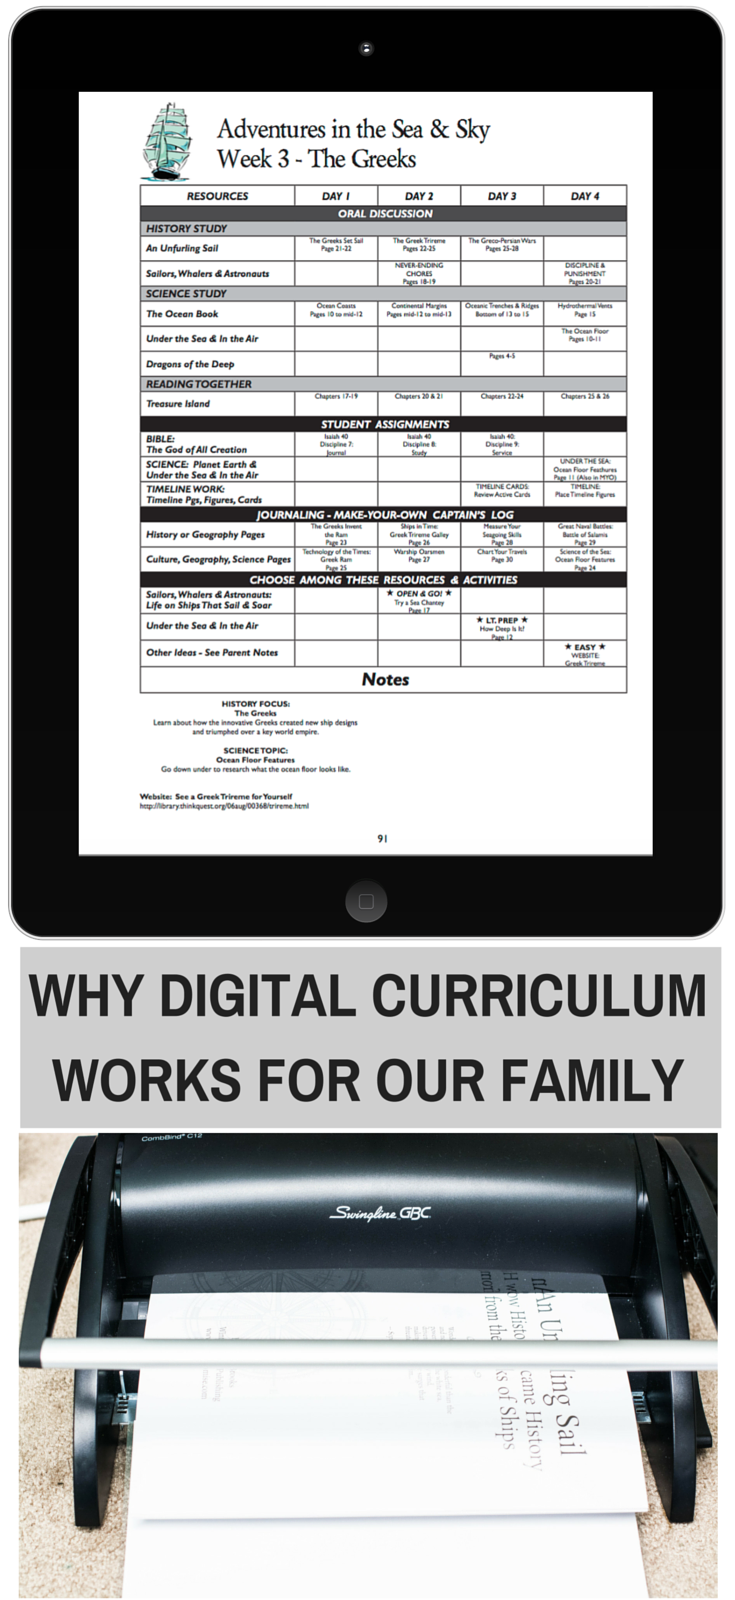 Why Digital Curriculum Works for Our Family: WinterPromise Review | Adventures in the Sea and Sky | Winter Promise | Digital Curriculum | ebooks versus print | homeschool curriculum |